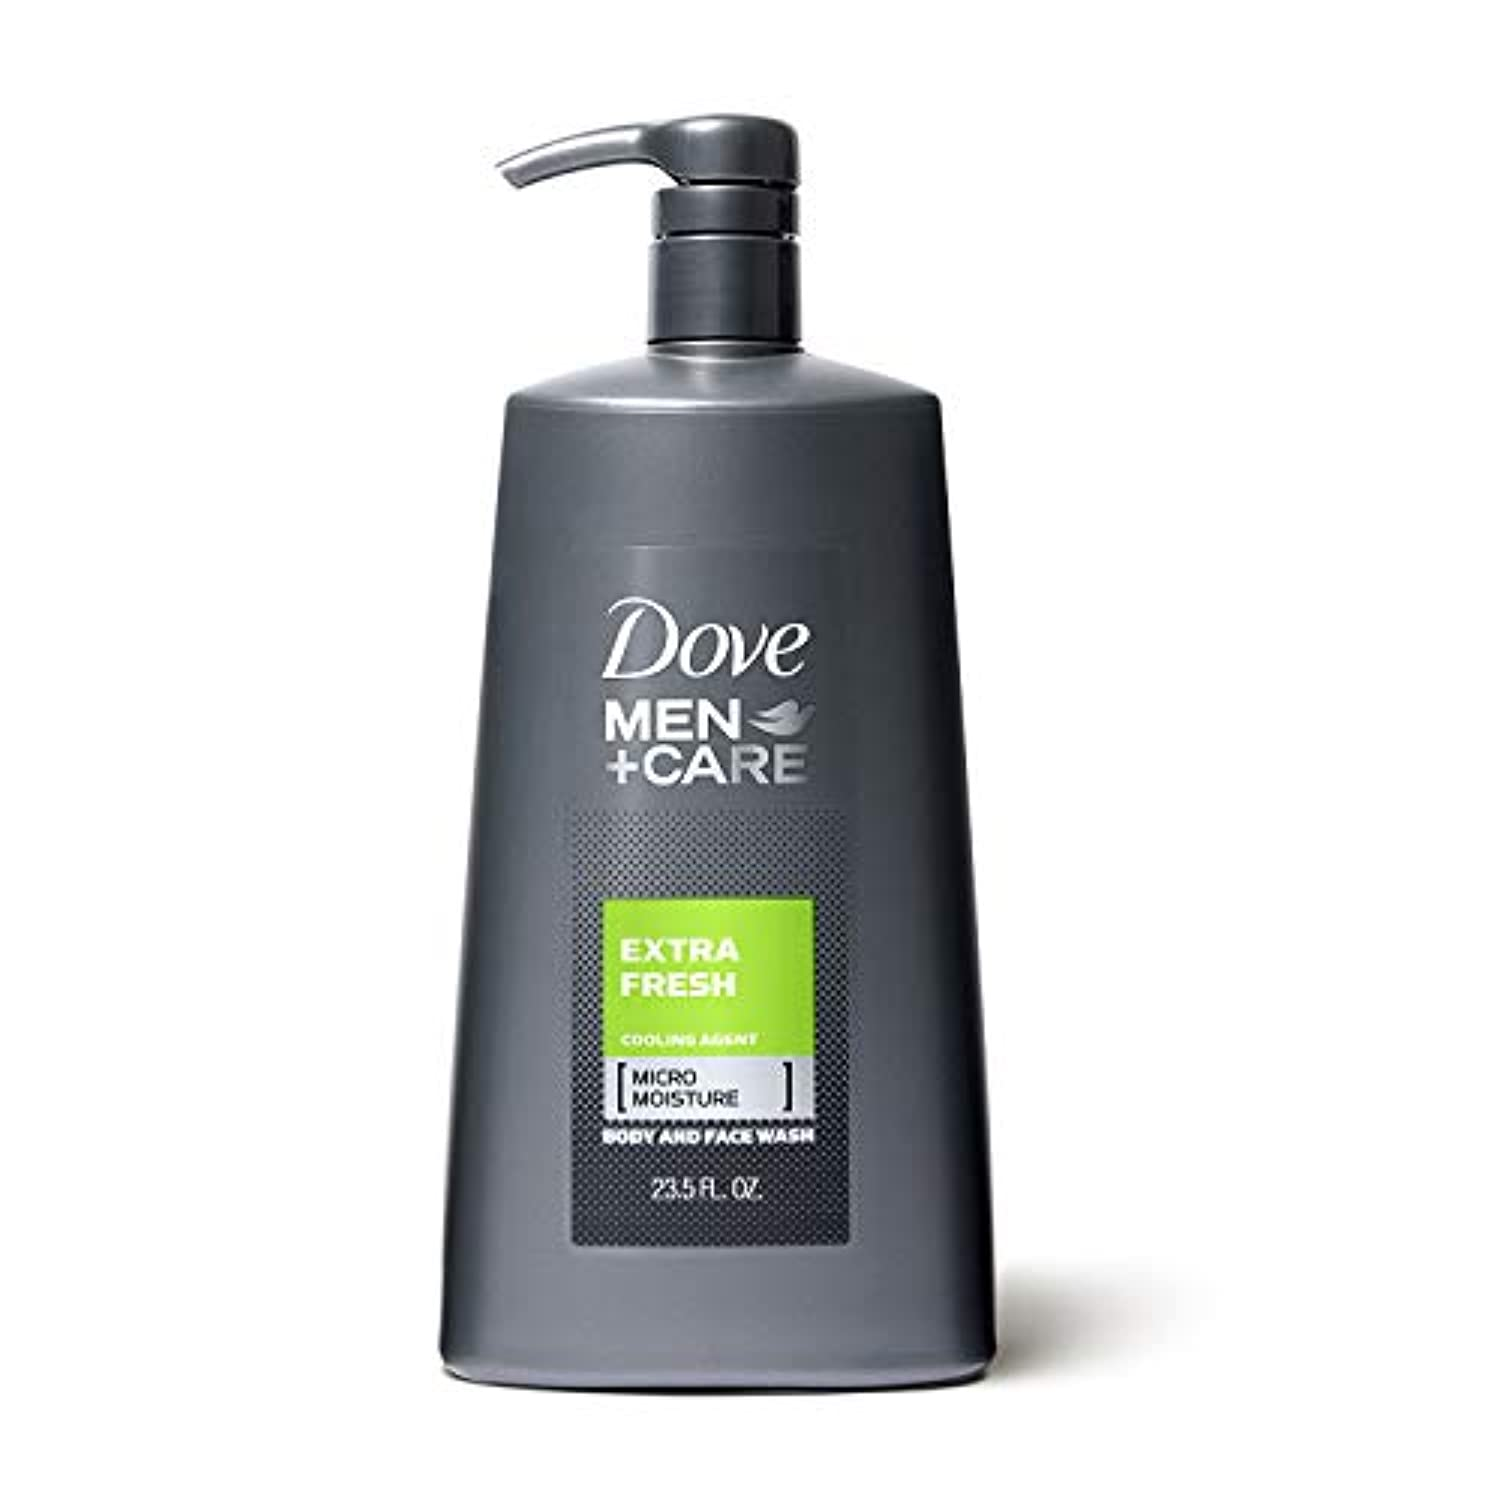 Classier: Buy DMC BAR BODY WASH Dove Men+Care Body and Face Wash Pump Extra Fresh 23.5 oz for Dry Skin Effectively Washes Away Bacteria While Nourishing Your Skin